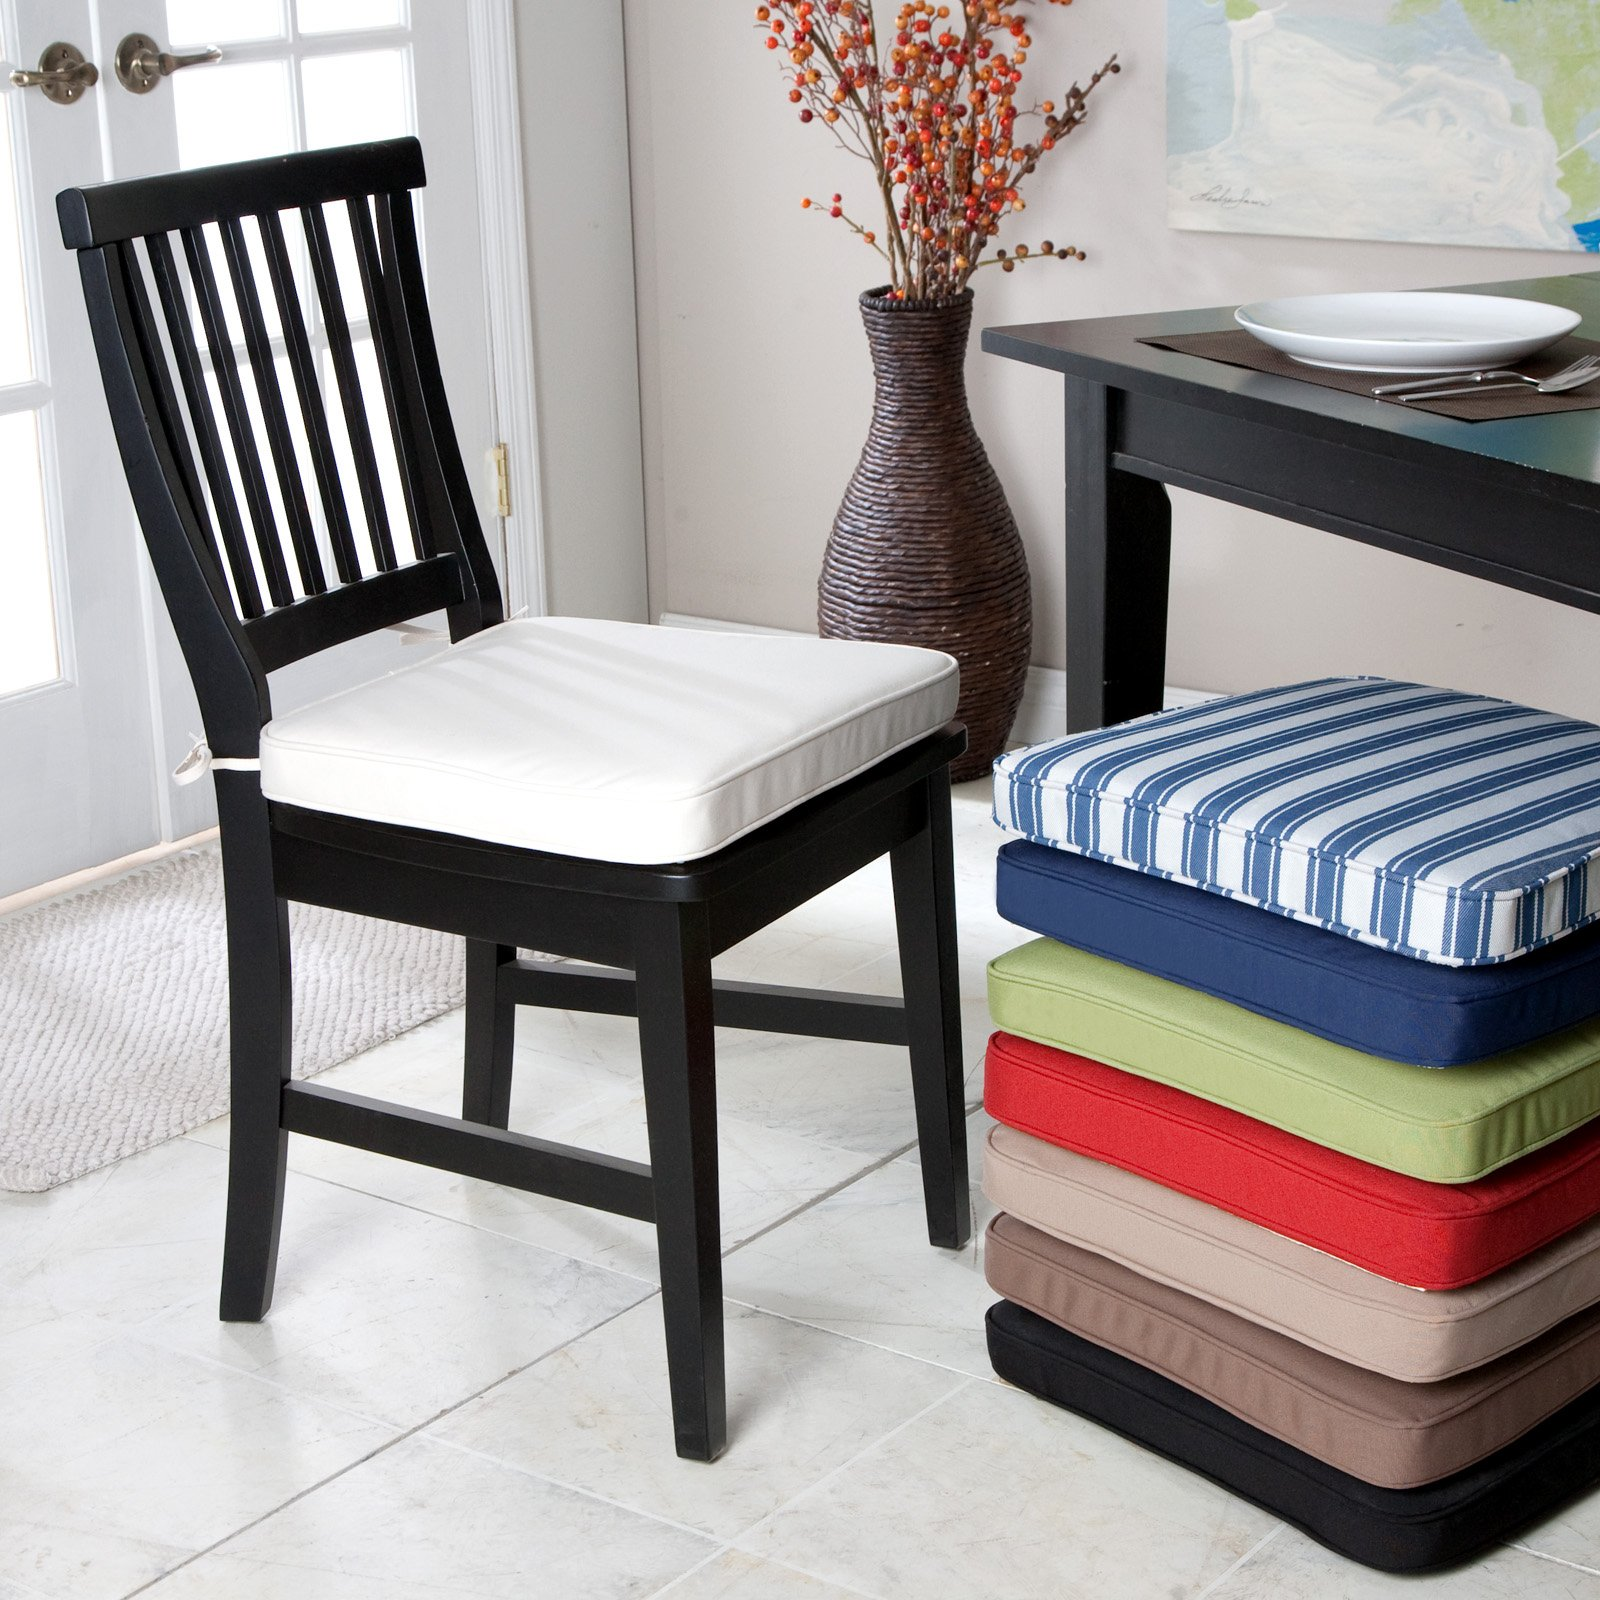 seat cushions dining room chairs large and beautiful photos photo